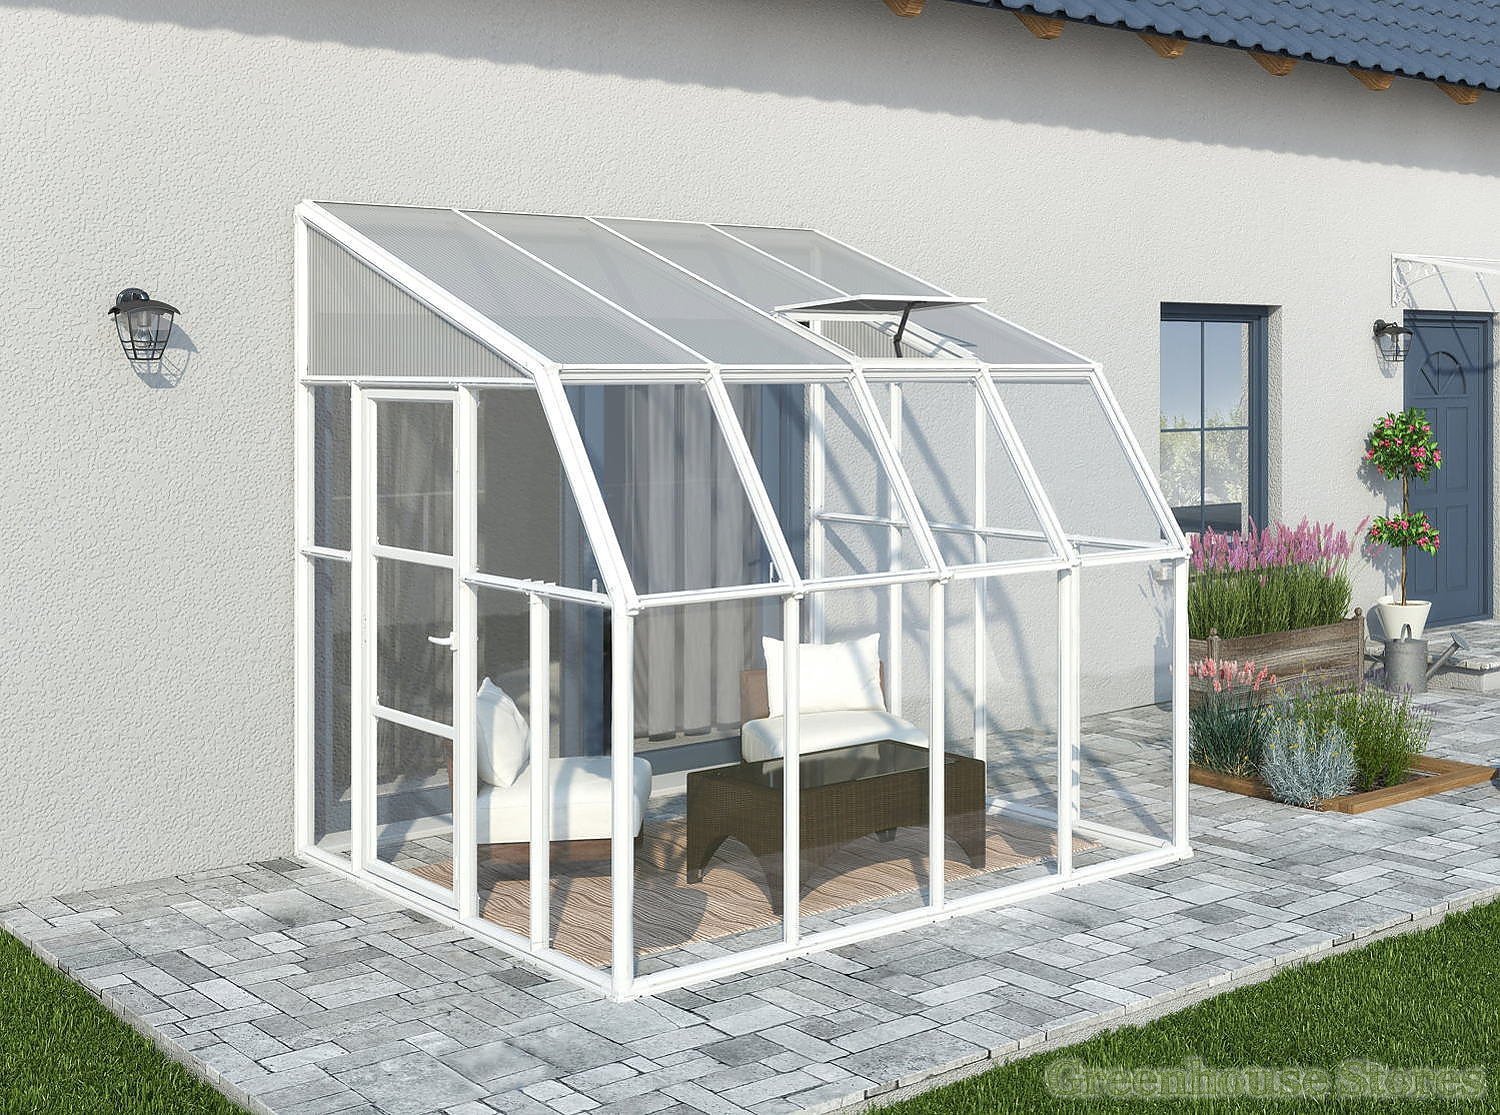 Rion Sun Room 8x8 Lean To Greenhouse Polycarbonate